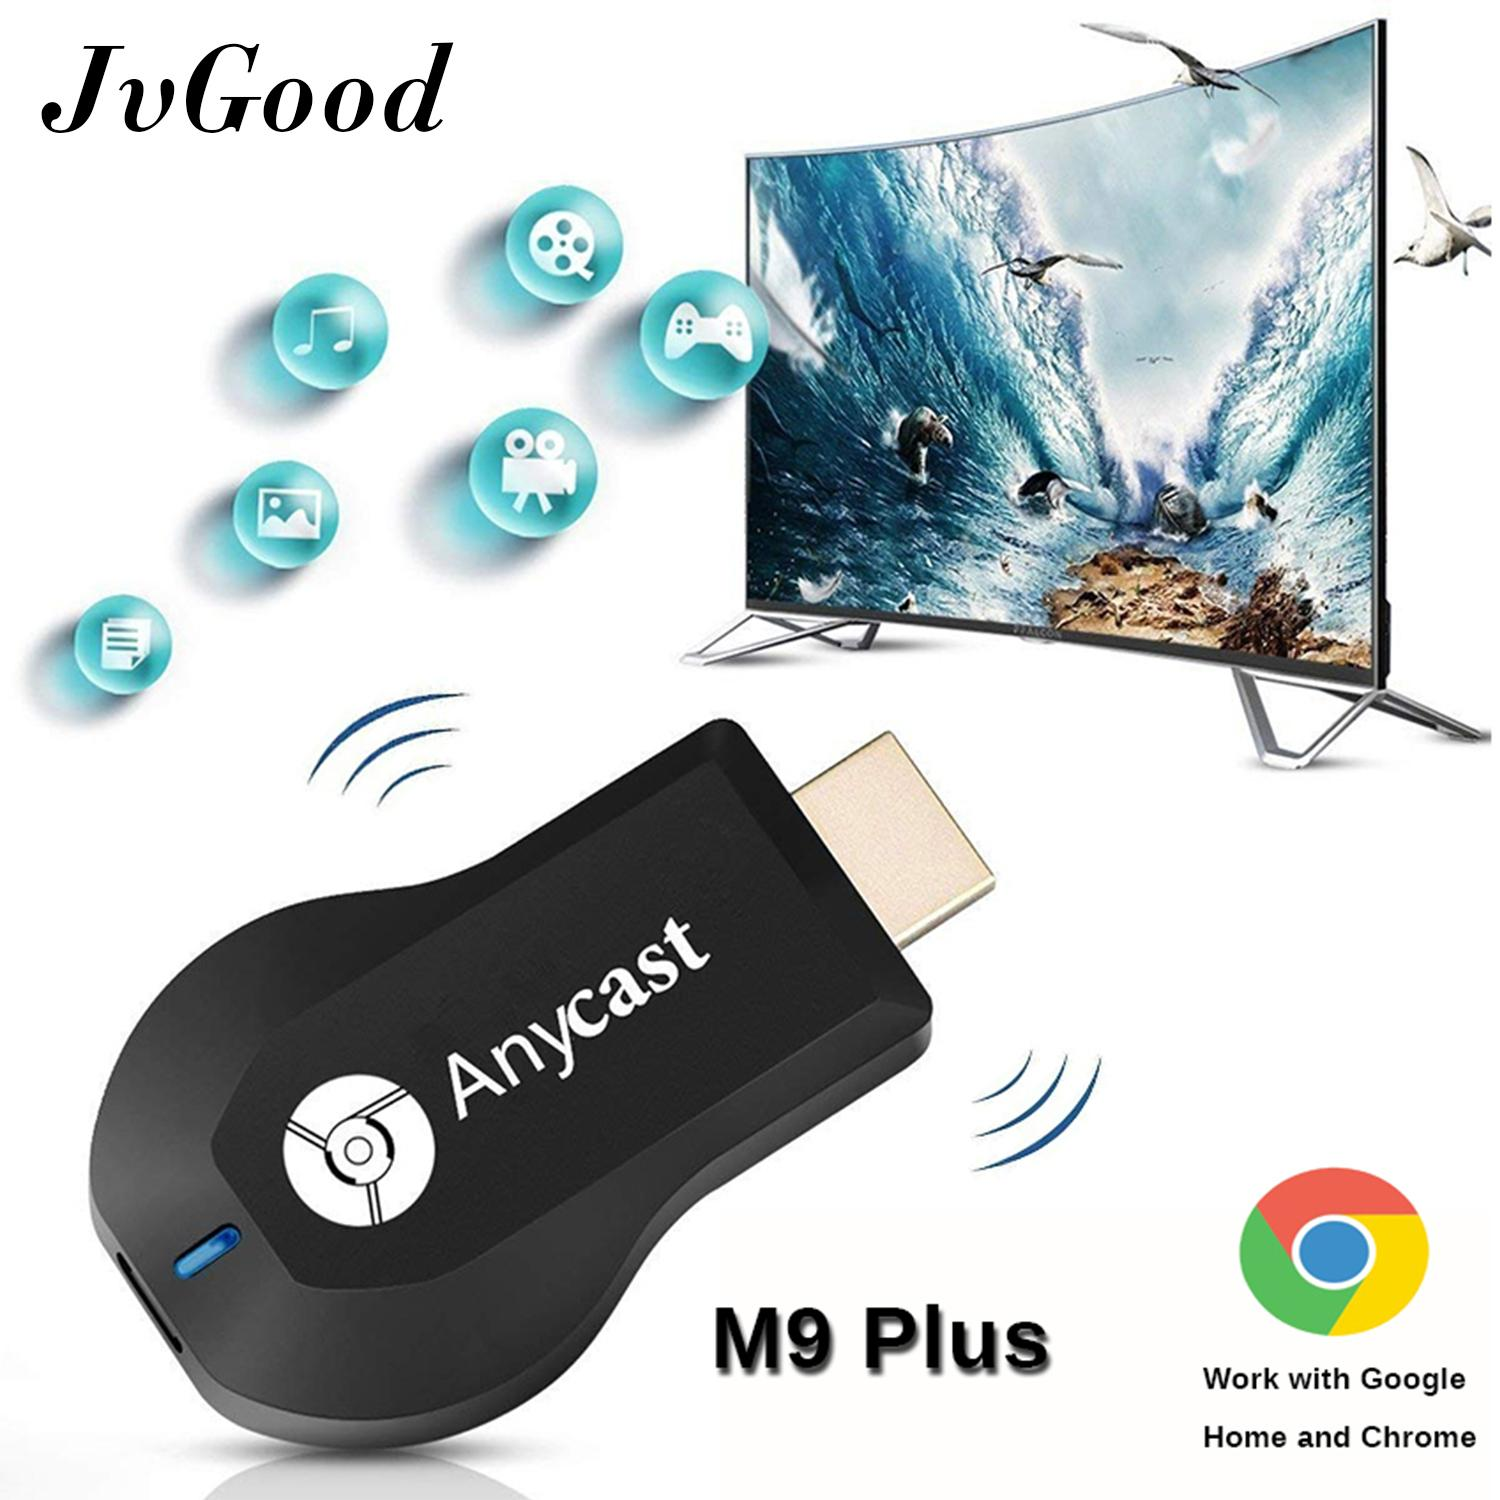 Buy Sell Cheapest Anebest Wifi Dongle Best Quality Product Deals Anycast Wireless Hdmi Display Hd Tv Jvgood Receivers Adapter M9 Airplay 1080p